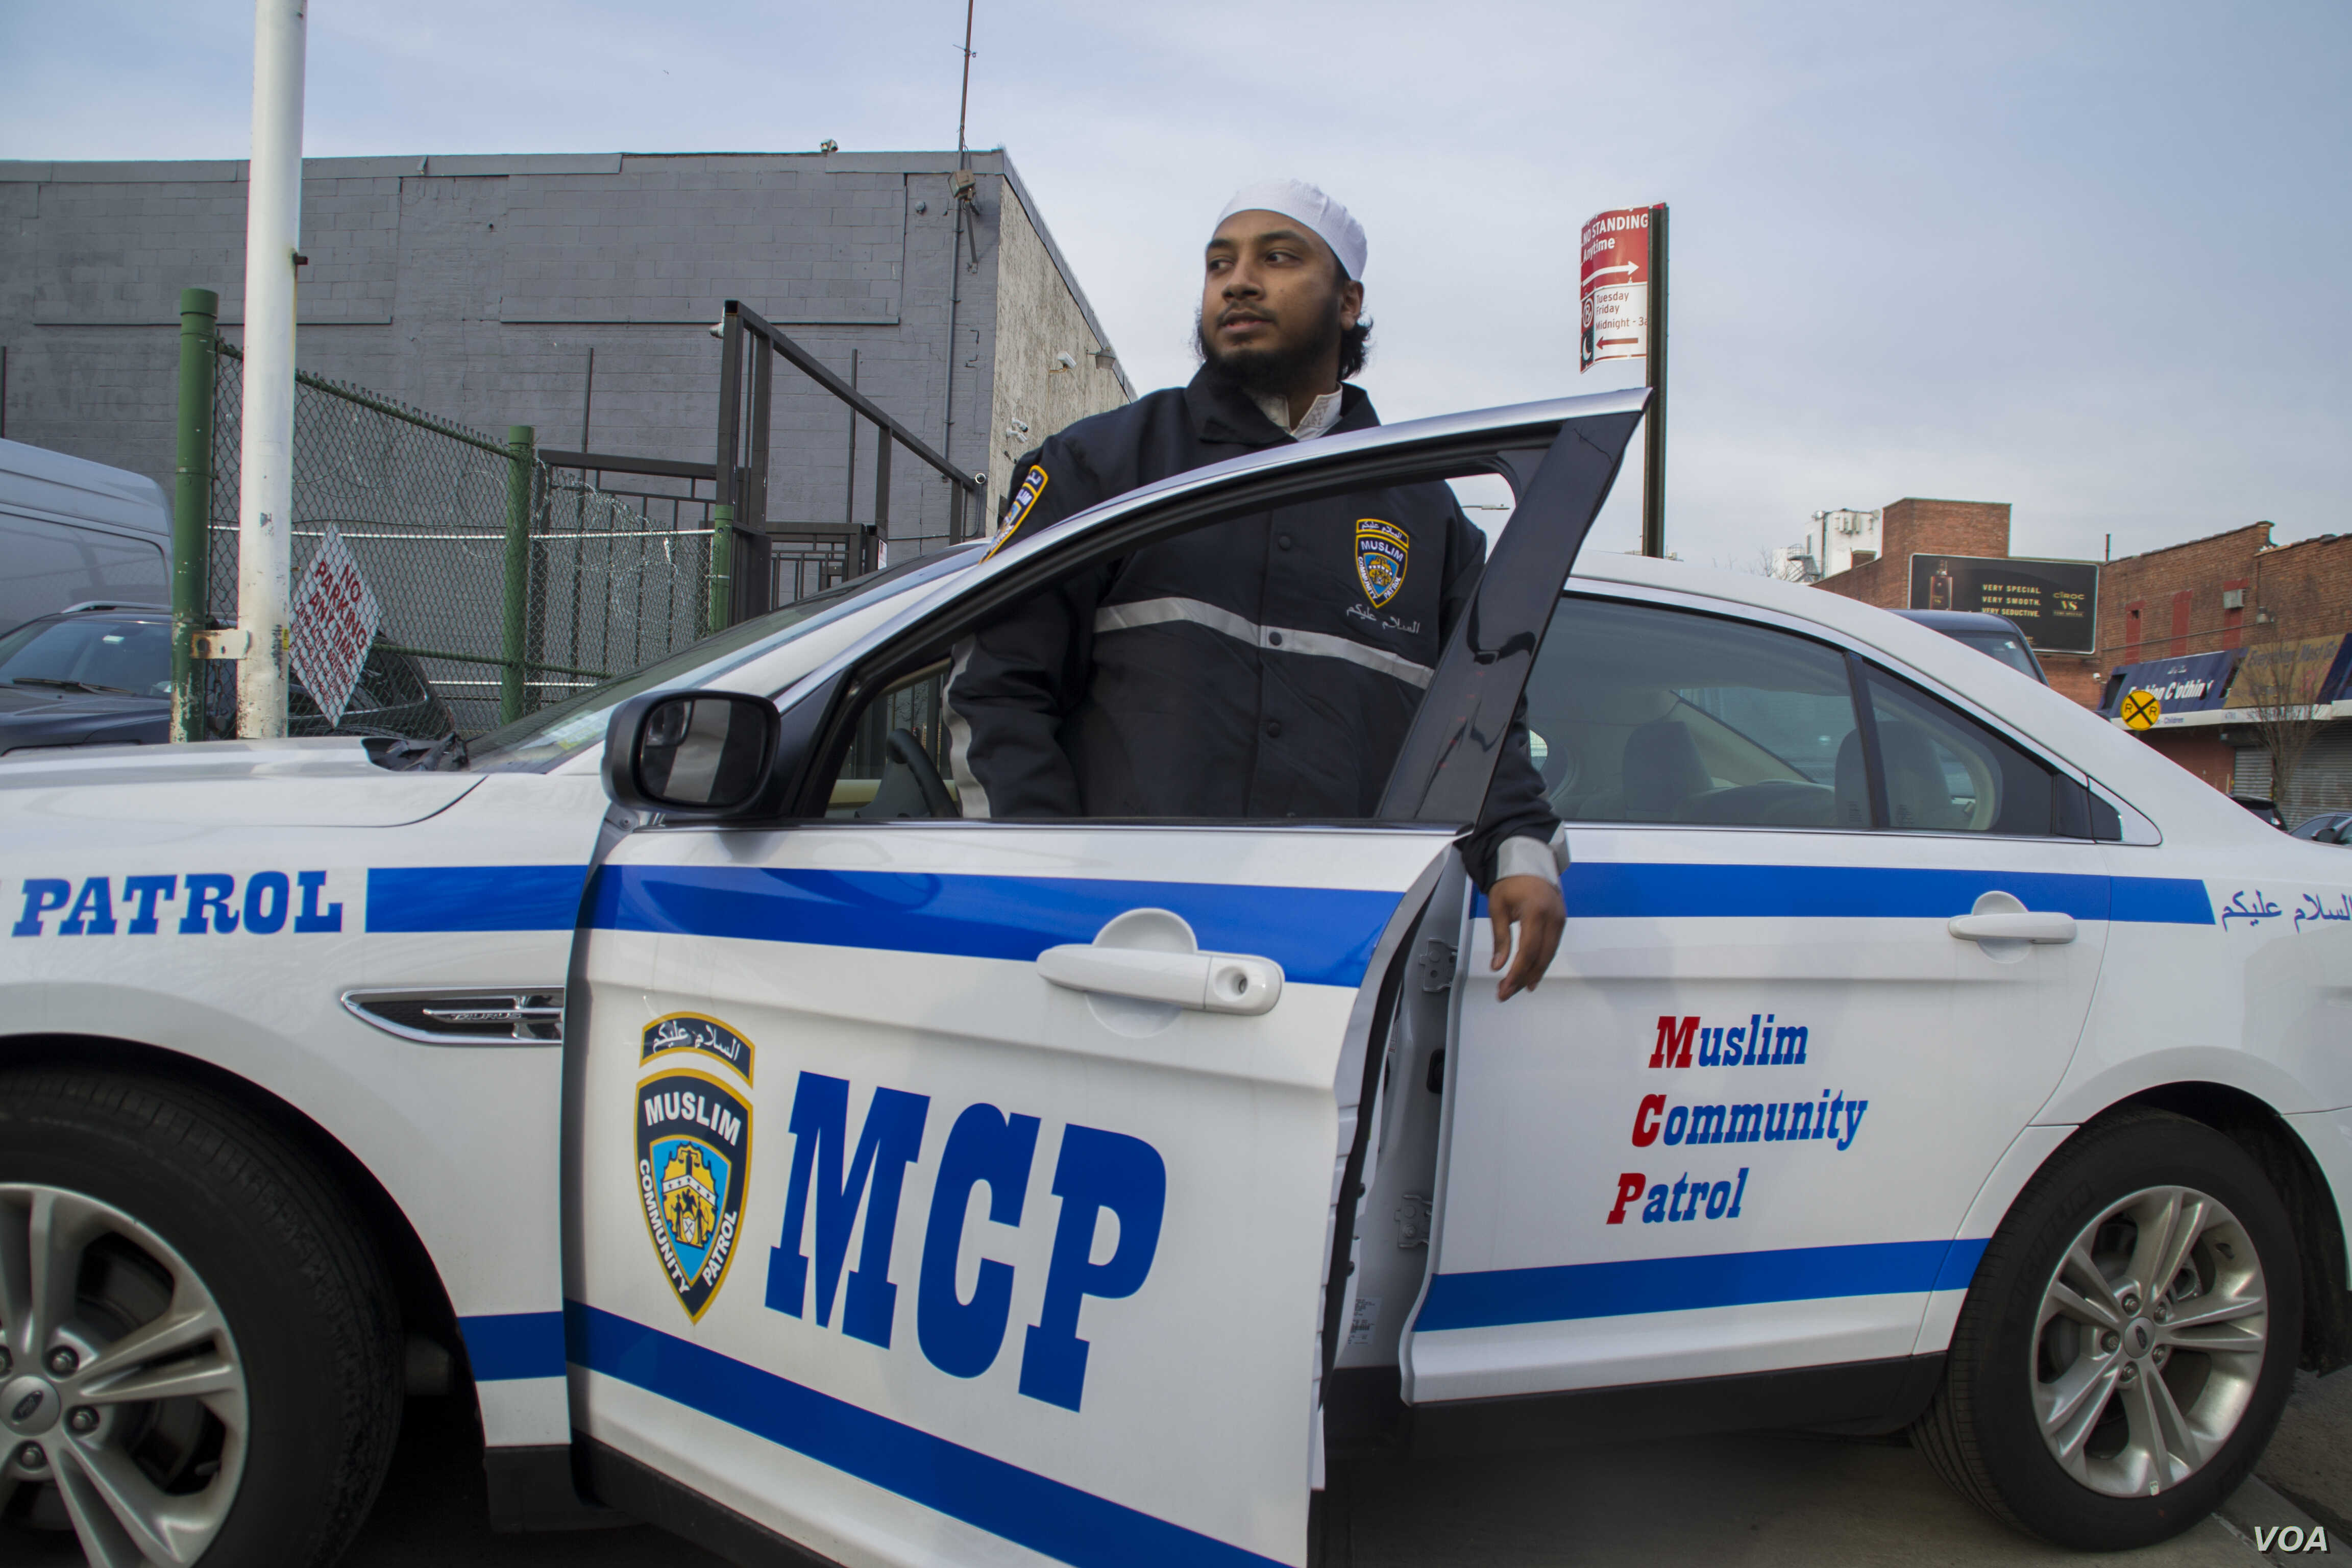 New York City Muslims Begin Community Safety Patrol | Voice